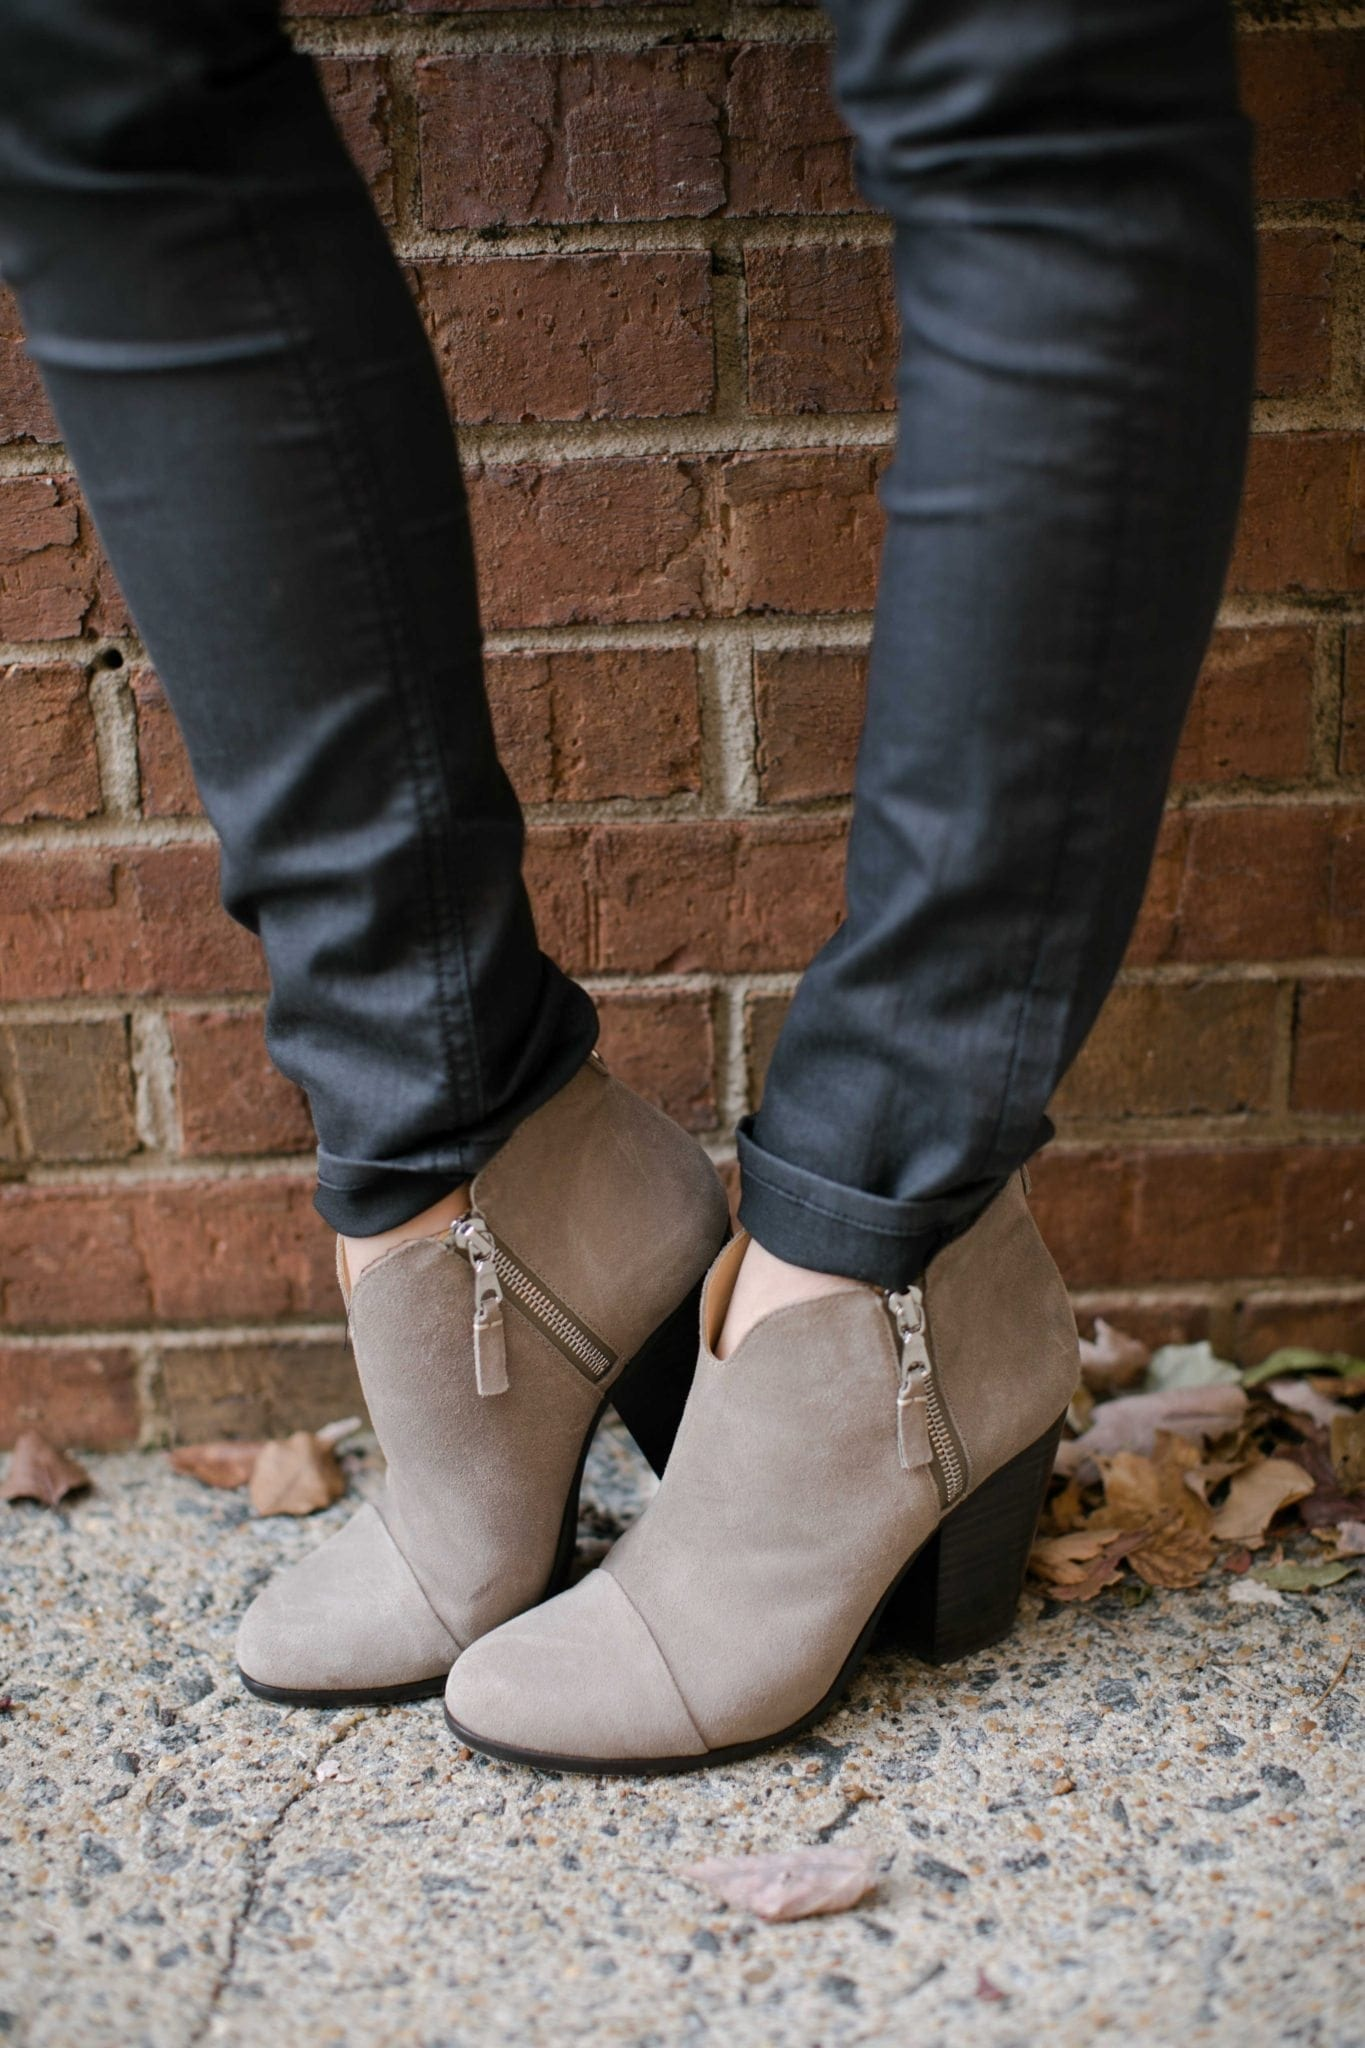 neutral booties with zippers on the side standing by fall leaves on the street with black jeans